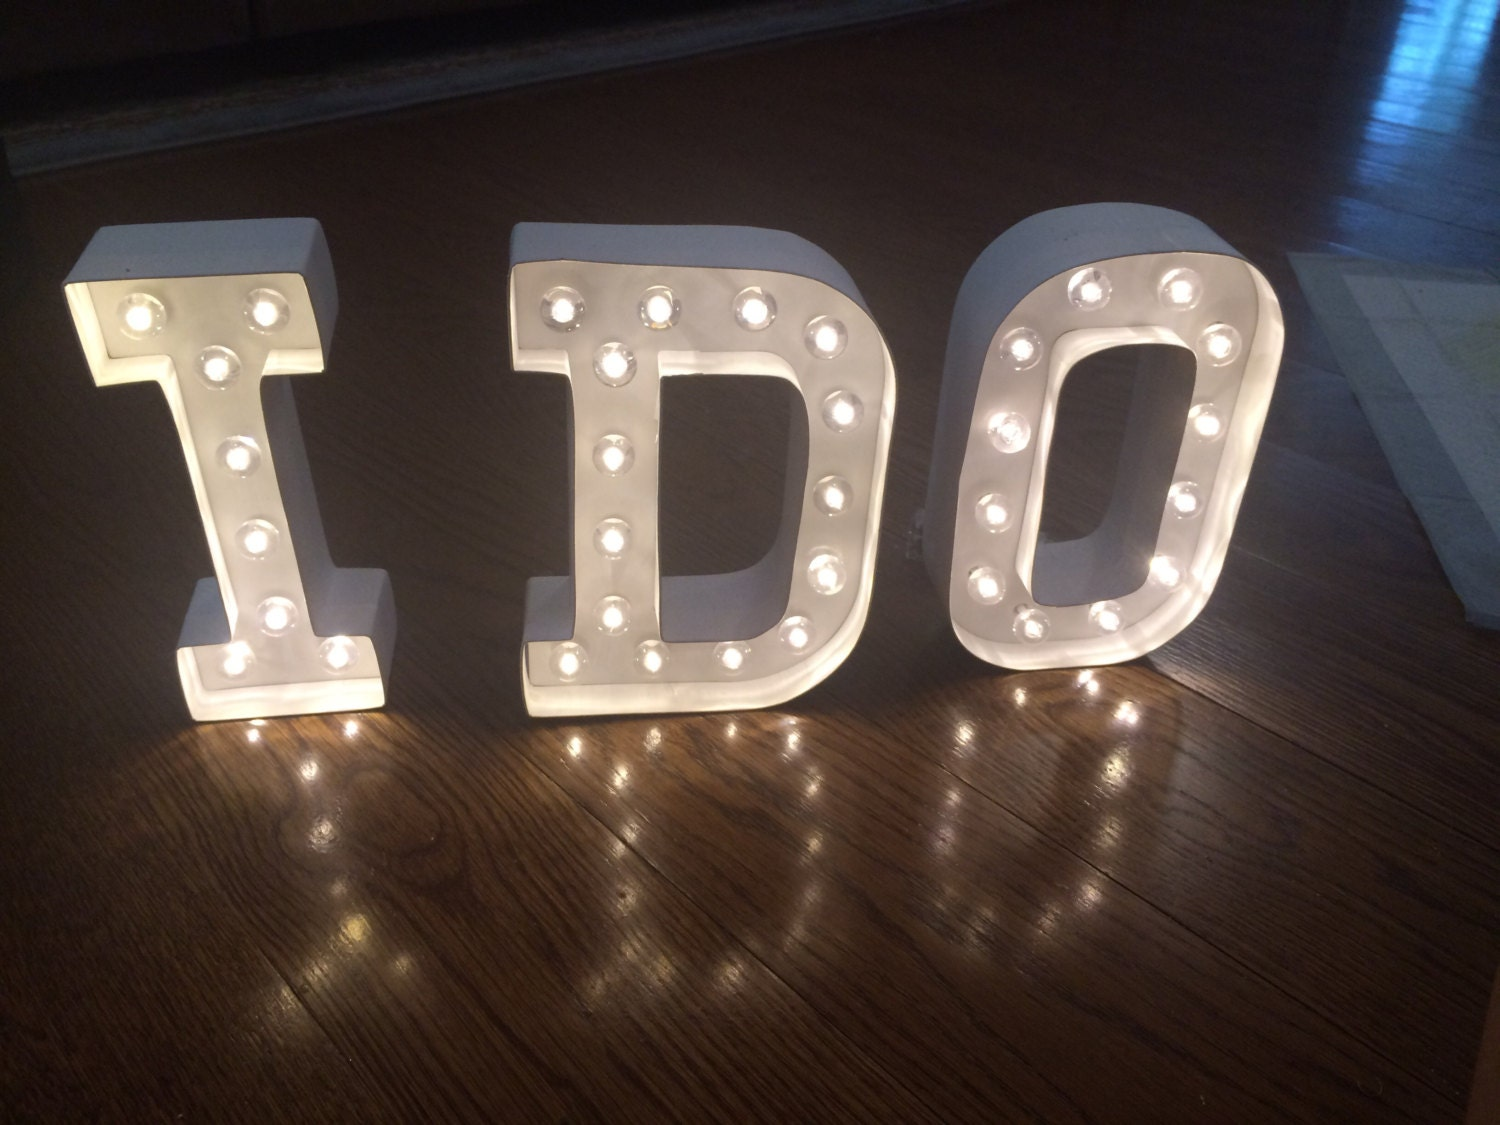 marquee light up letters i do marquee light up letters wedding 23581 | il fullxfull.788775756 2zrf